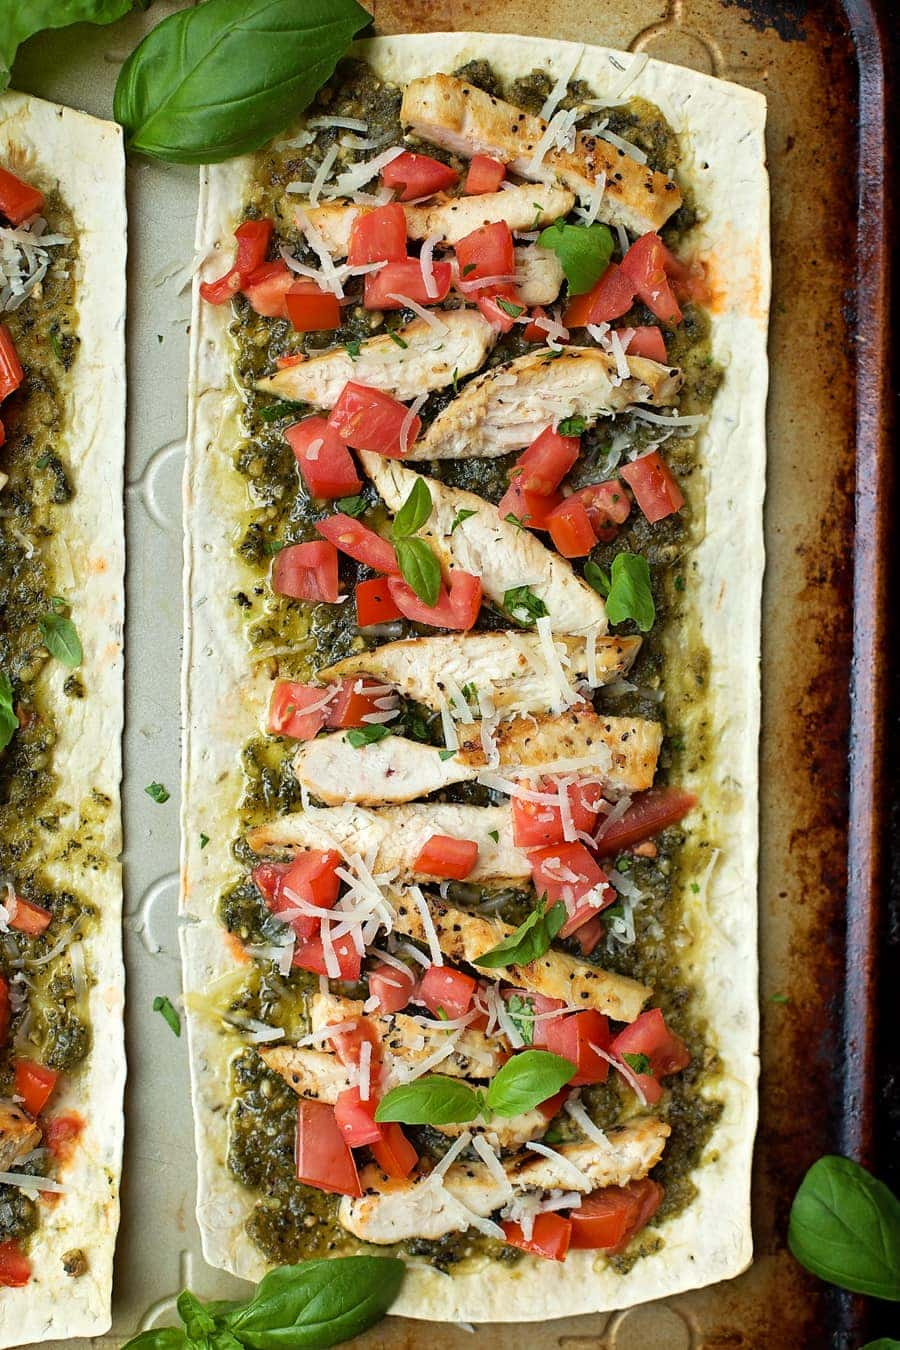 Lightened Up Flatbread Pizzas | Chicken Pesto Pizza - full of flavor and not on calories!